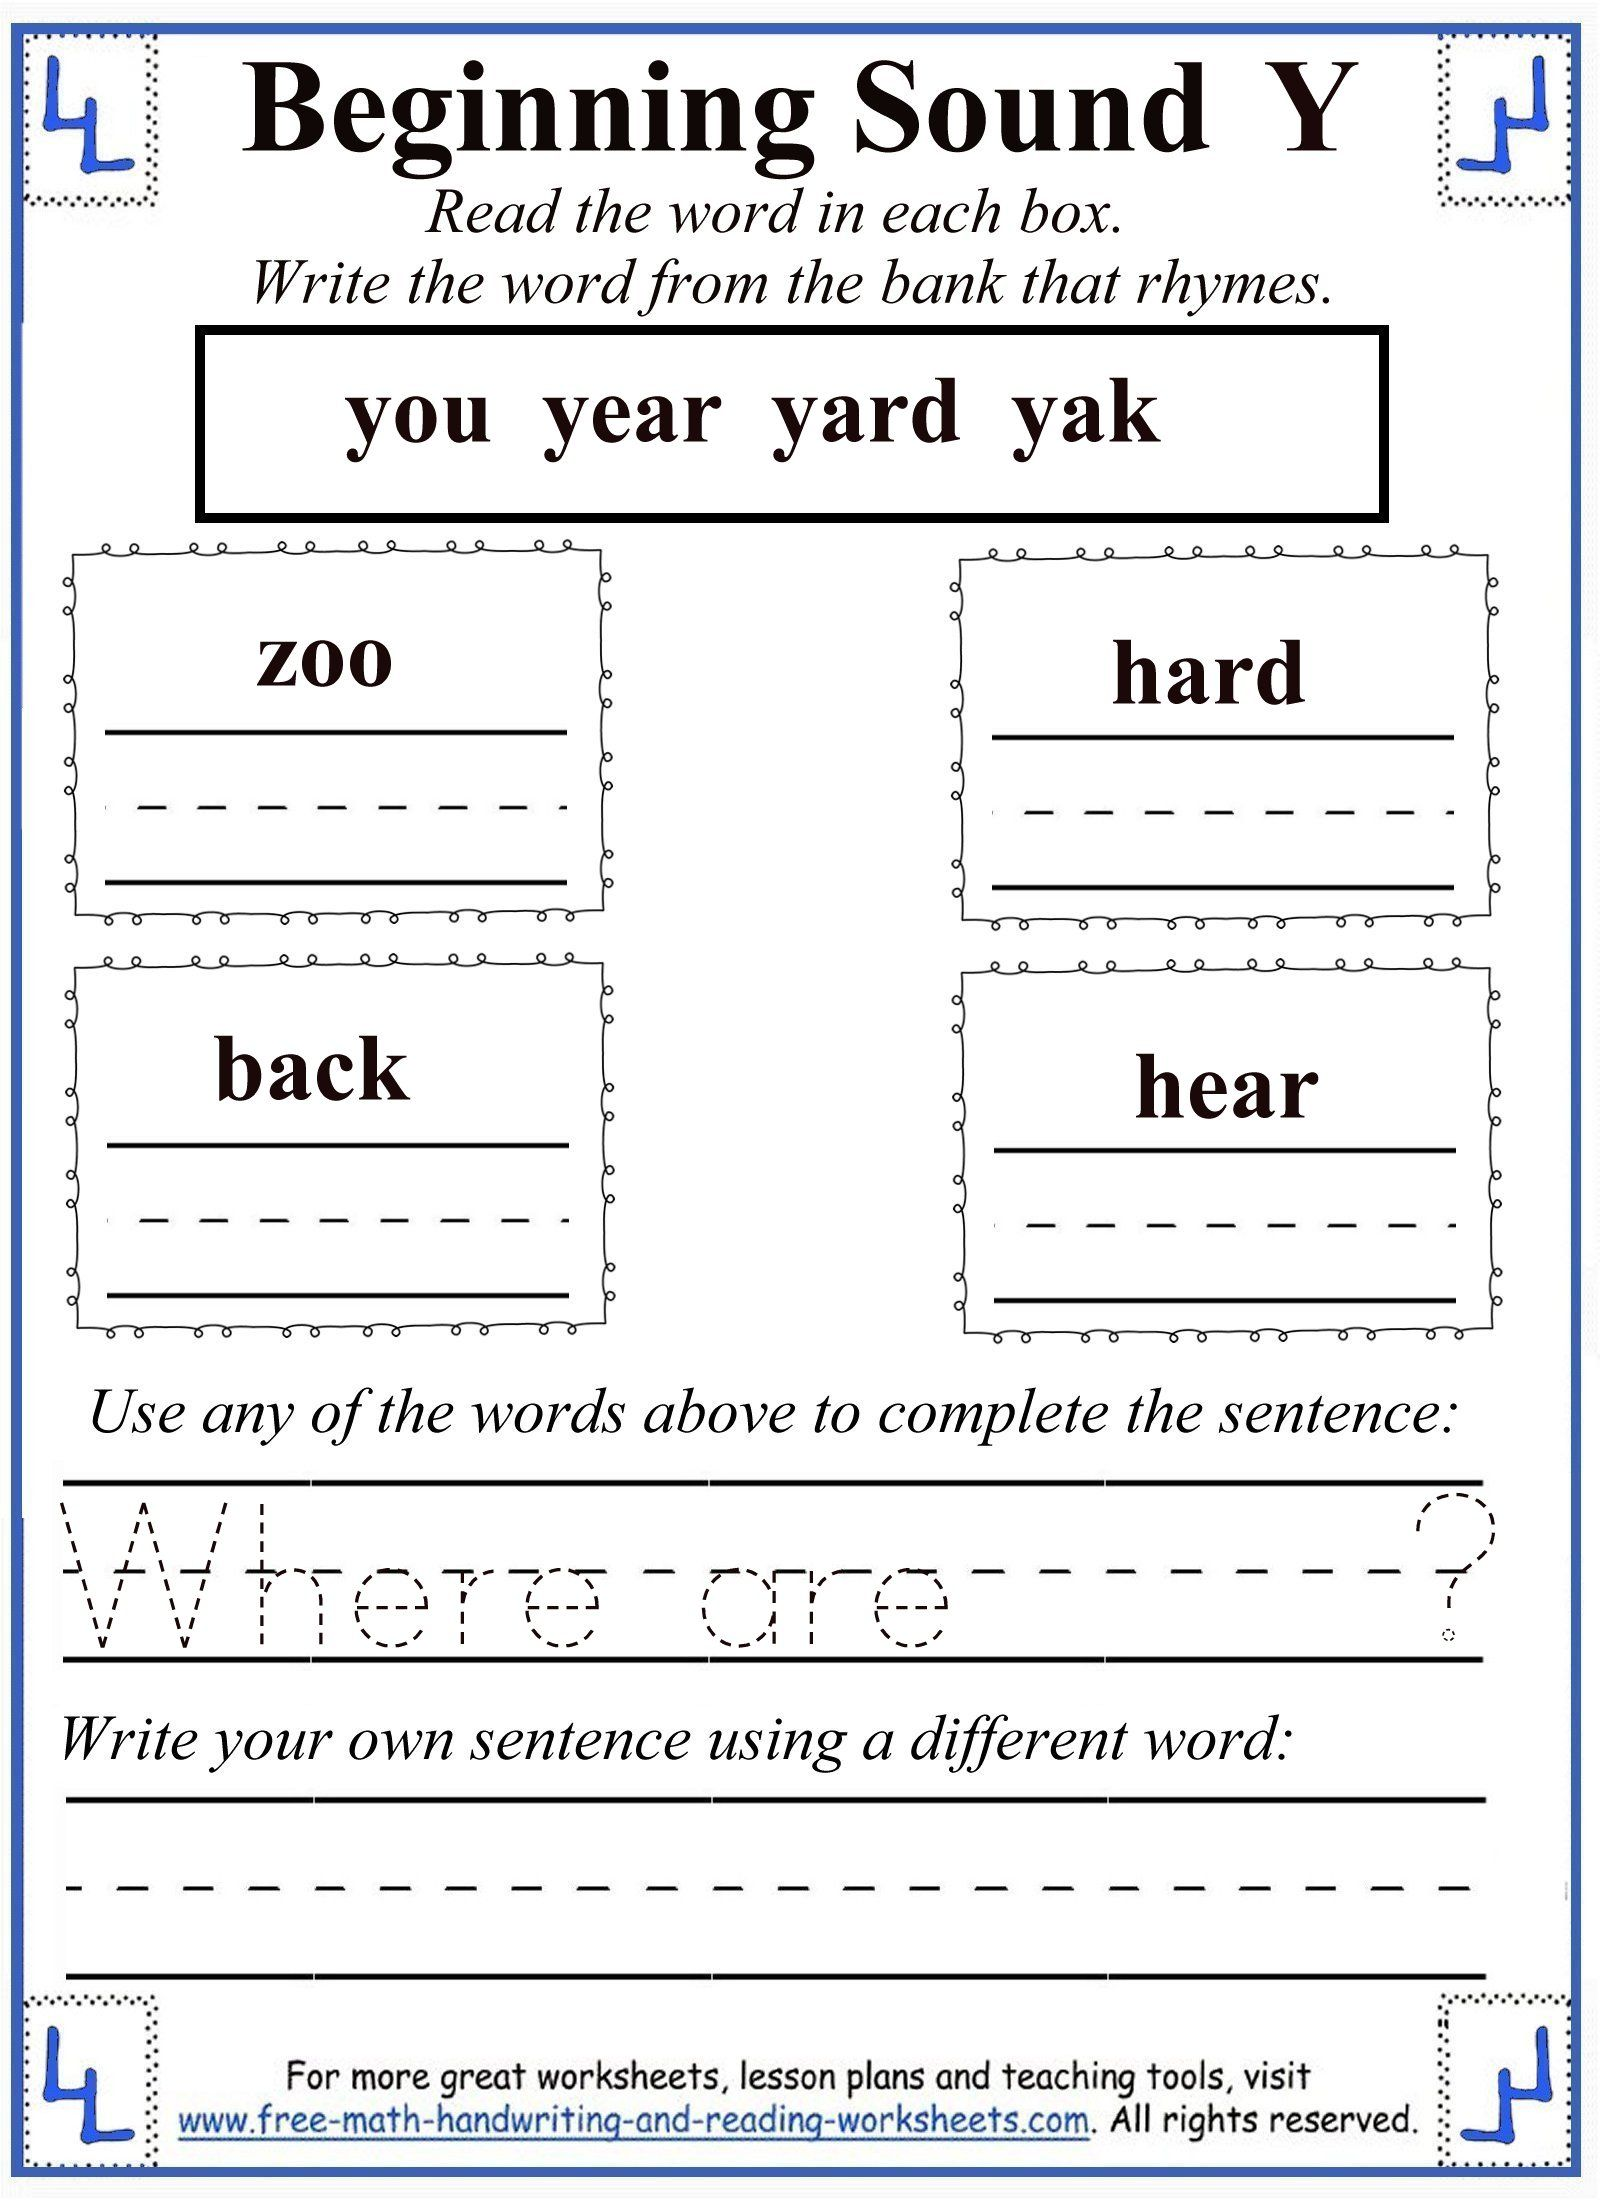 worksheet Letter Y Worksheet rhyming letter y worksheet consonant letters pinterest worksheet